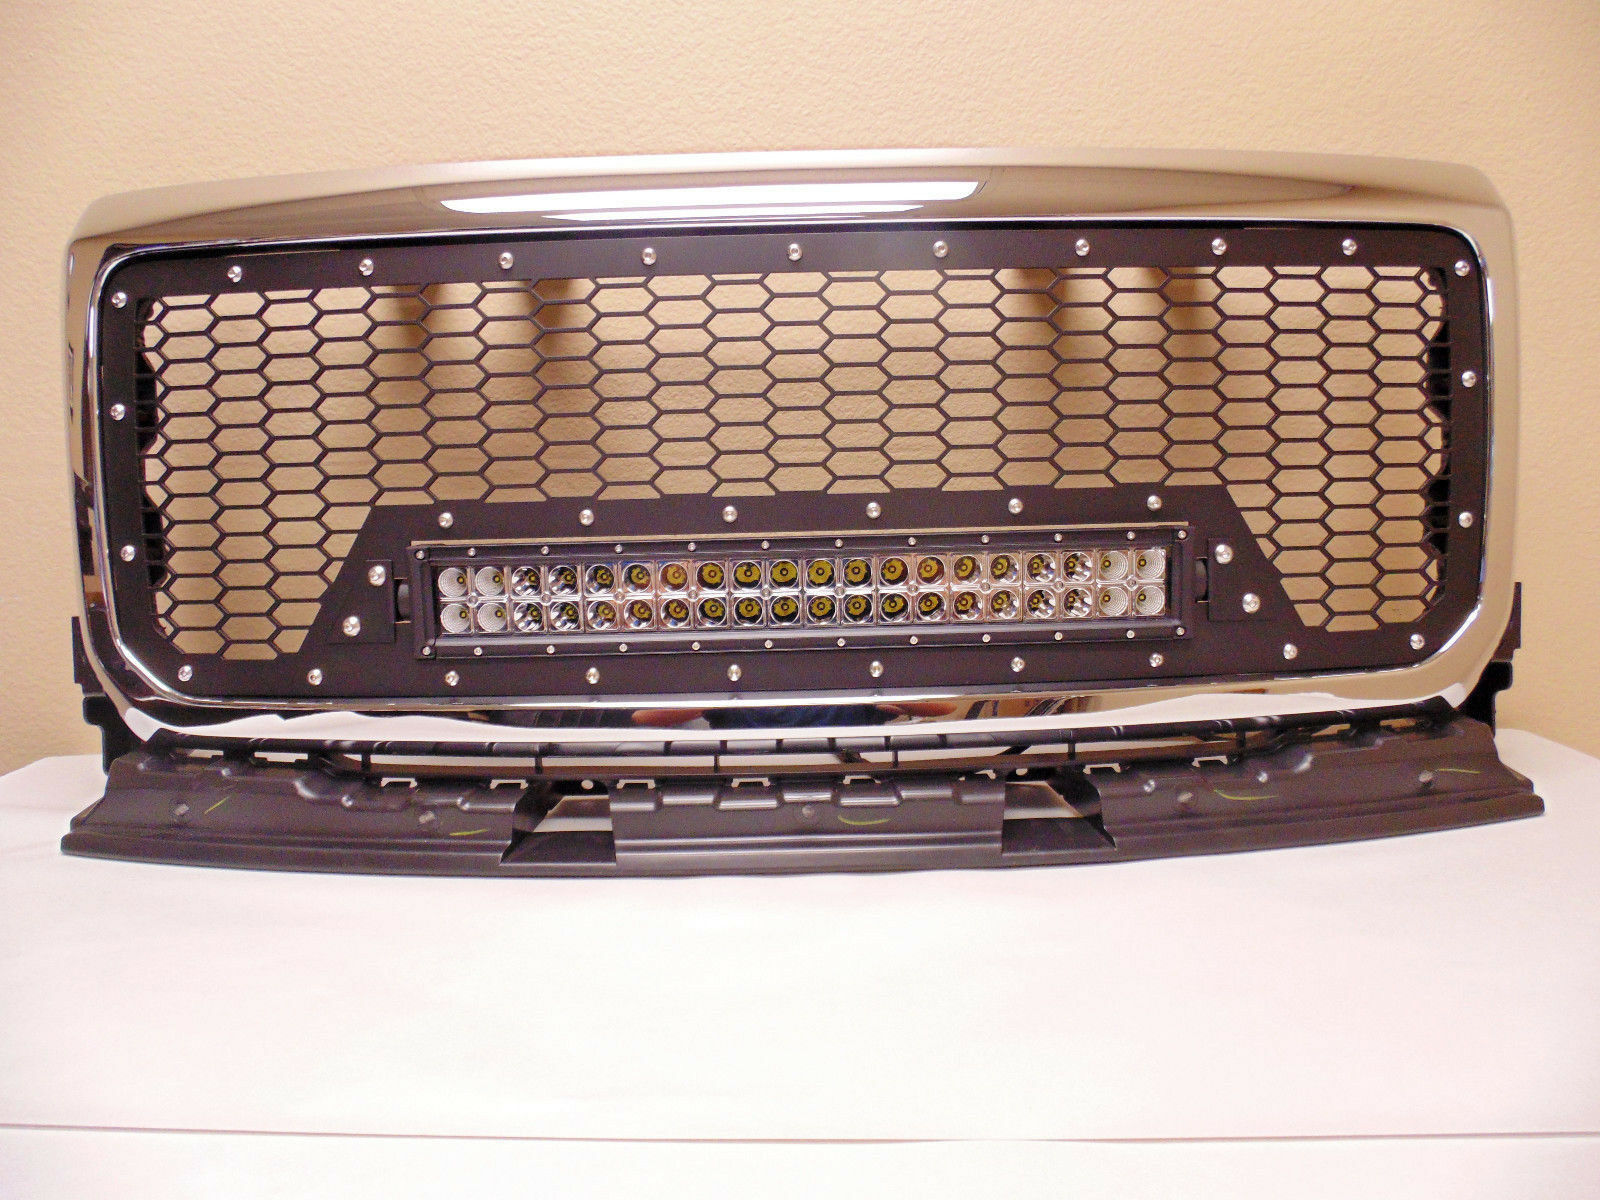 15 19 Gmc Canyon Denali Black Mesh Aluminum Grille Surround 57 Chevy Wiring Harness Ebay Click To Enlarge The Images Below